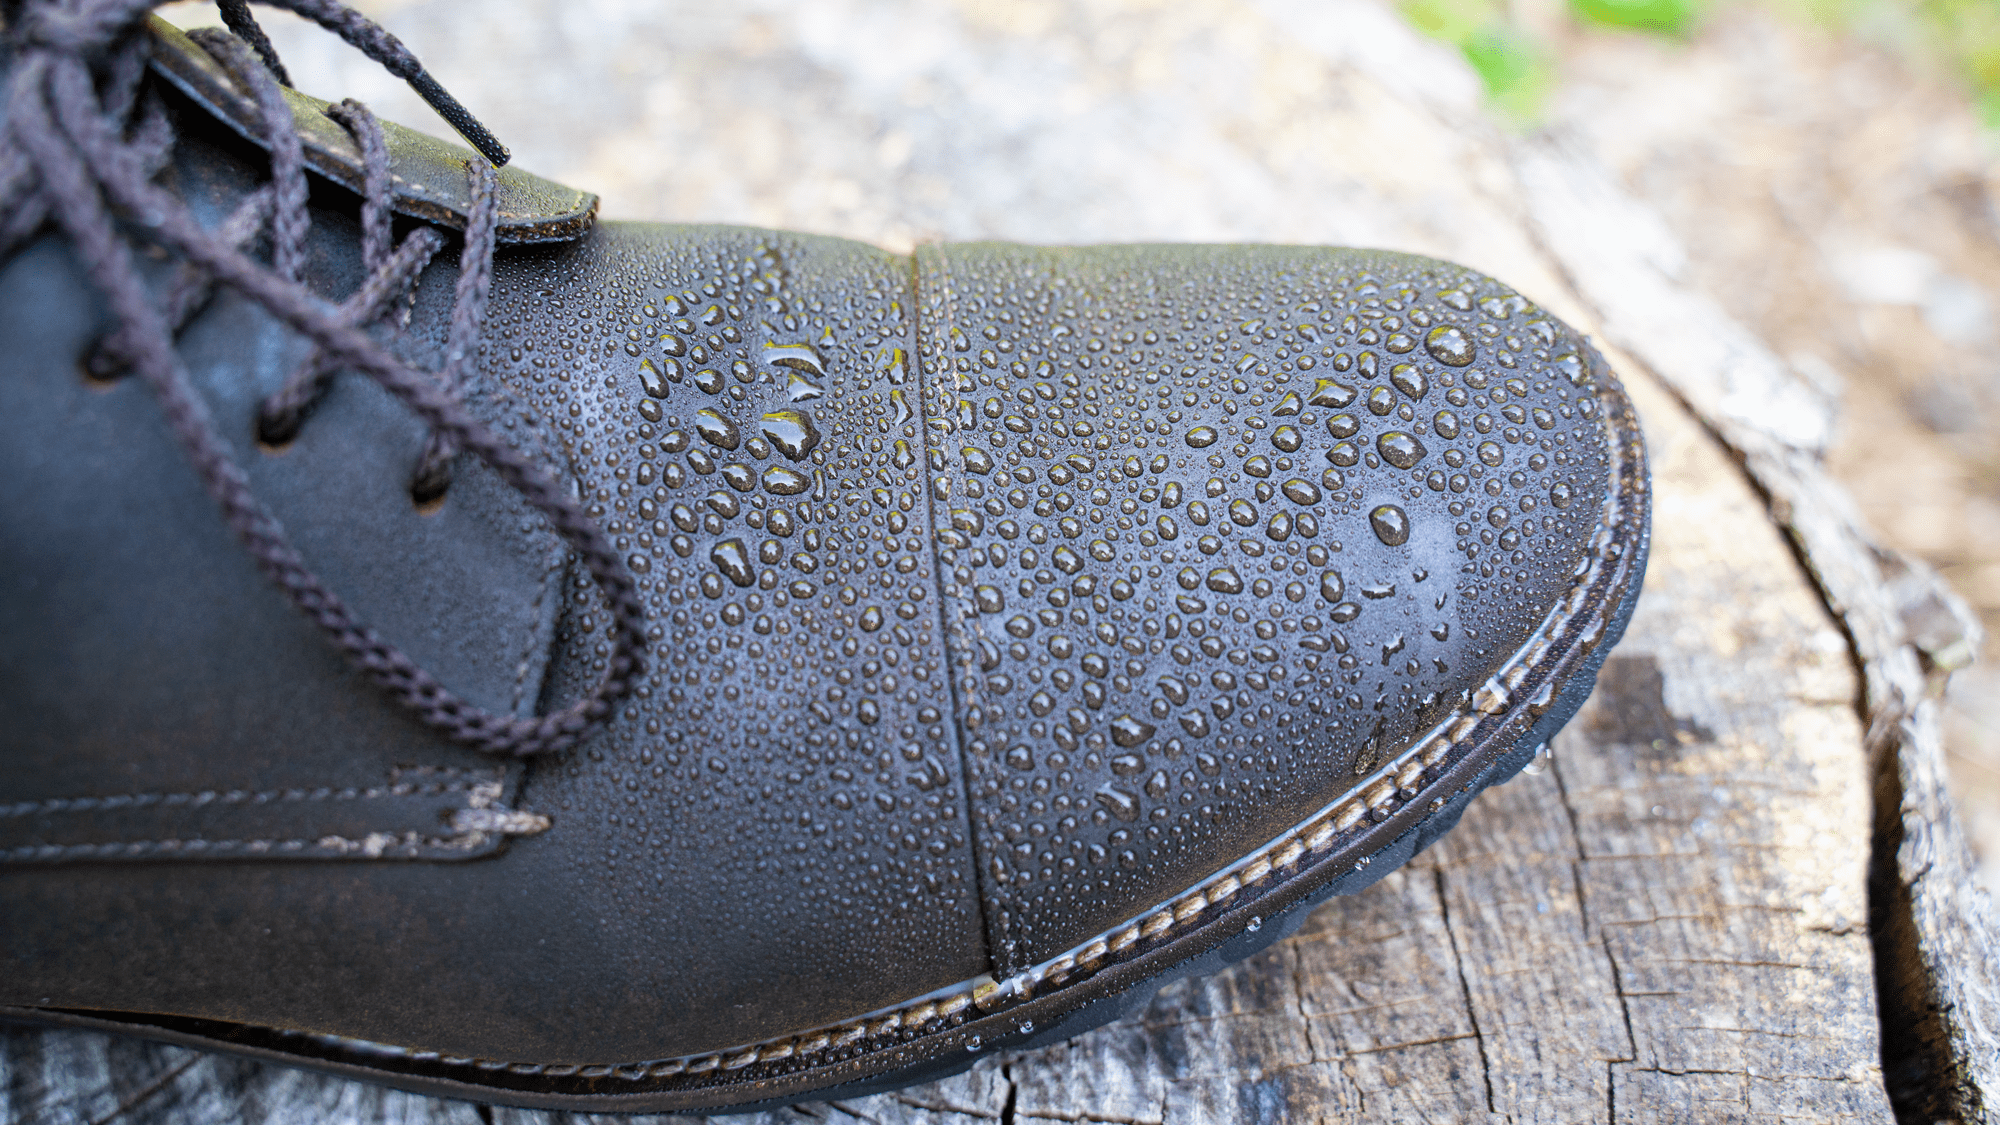 Waxed Suede Shoe with Water Droplets